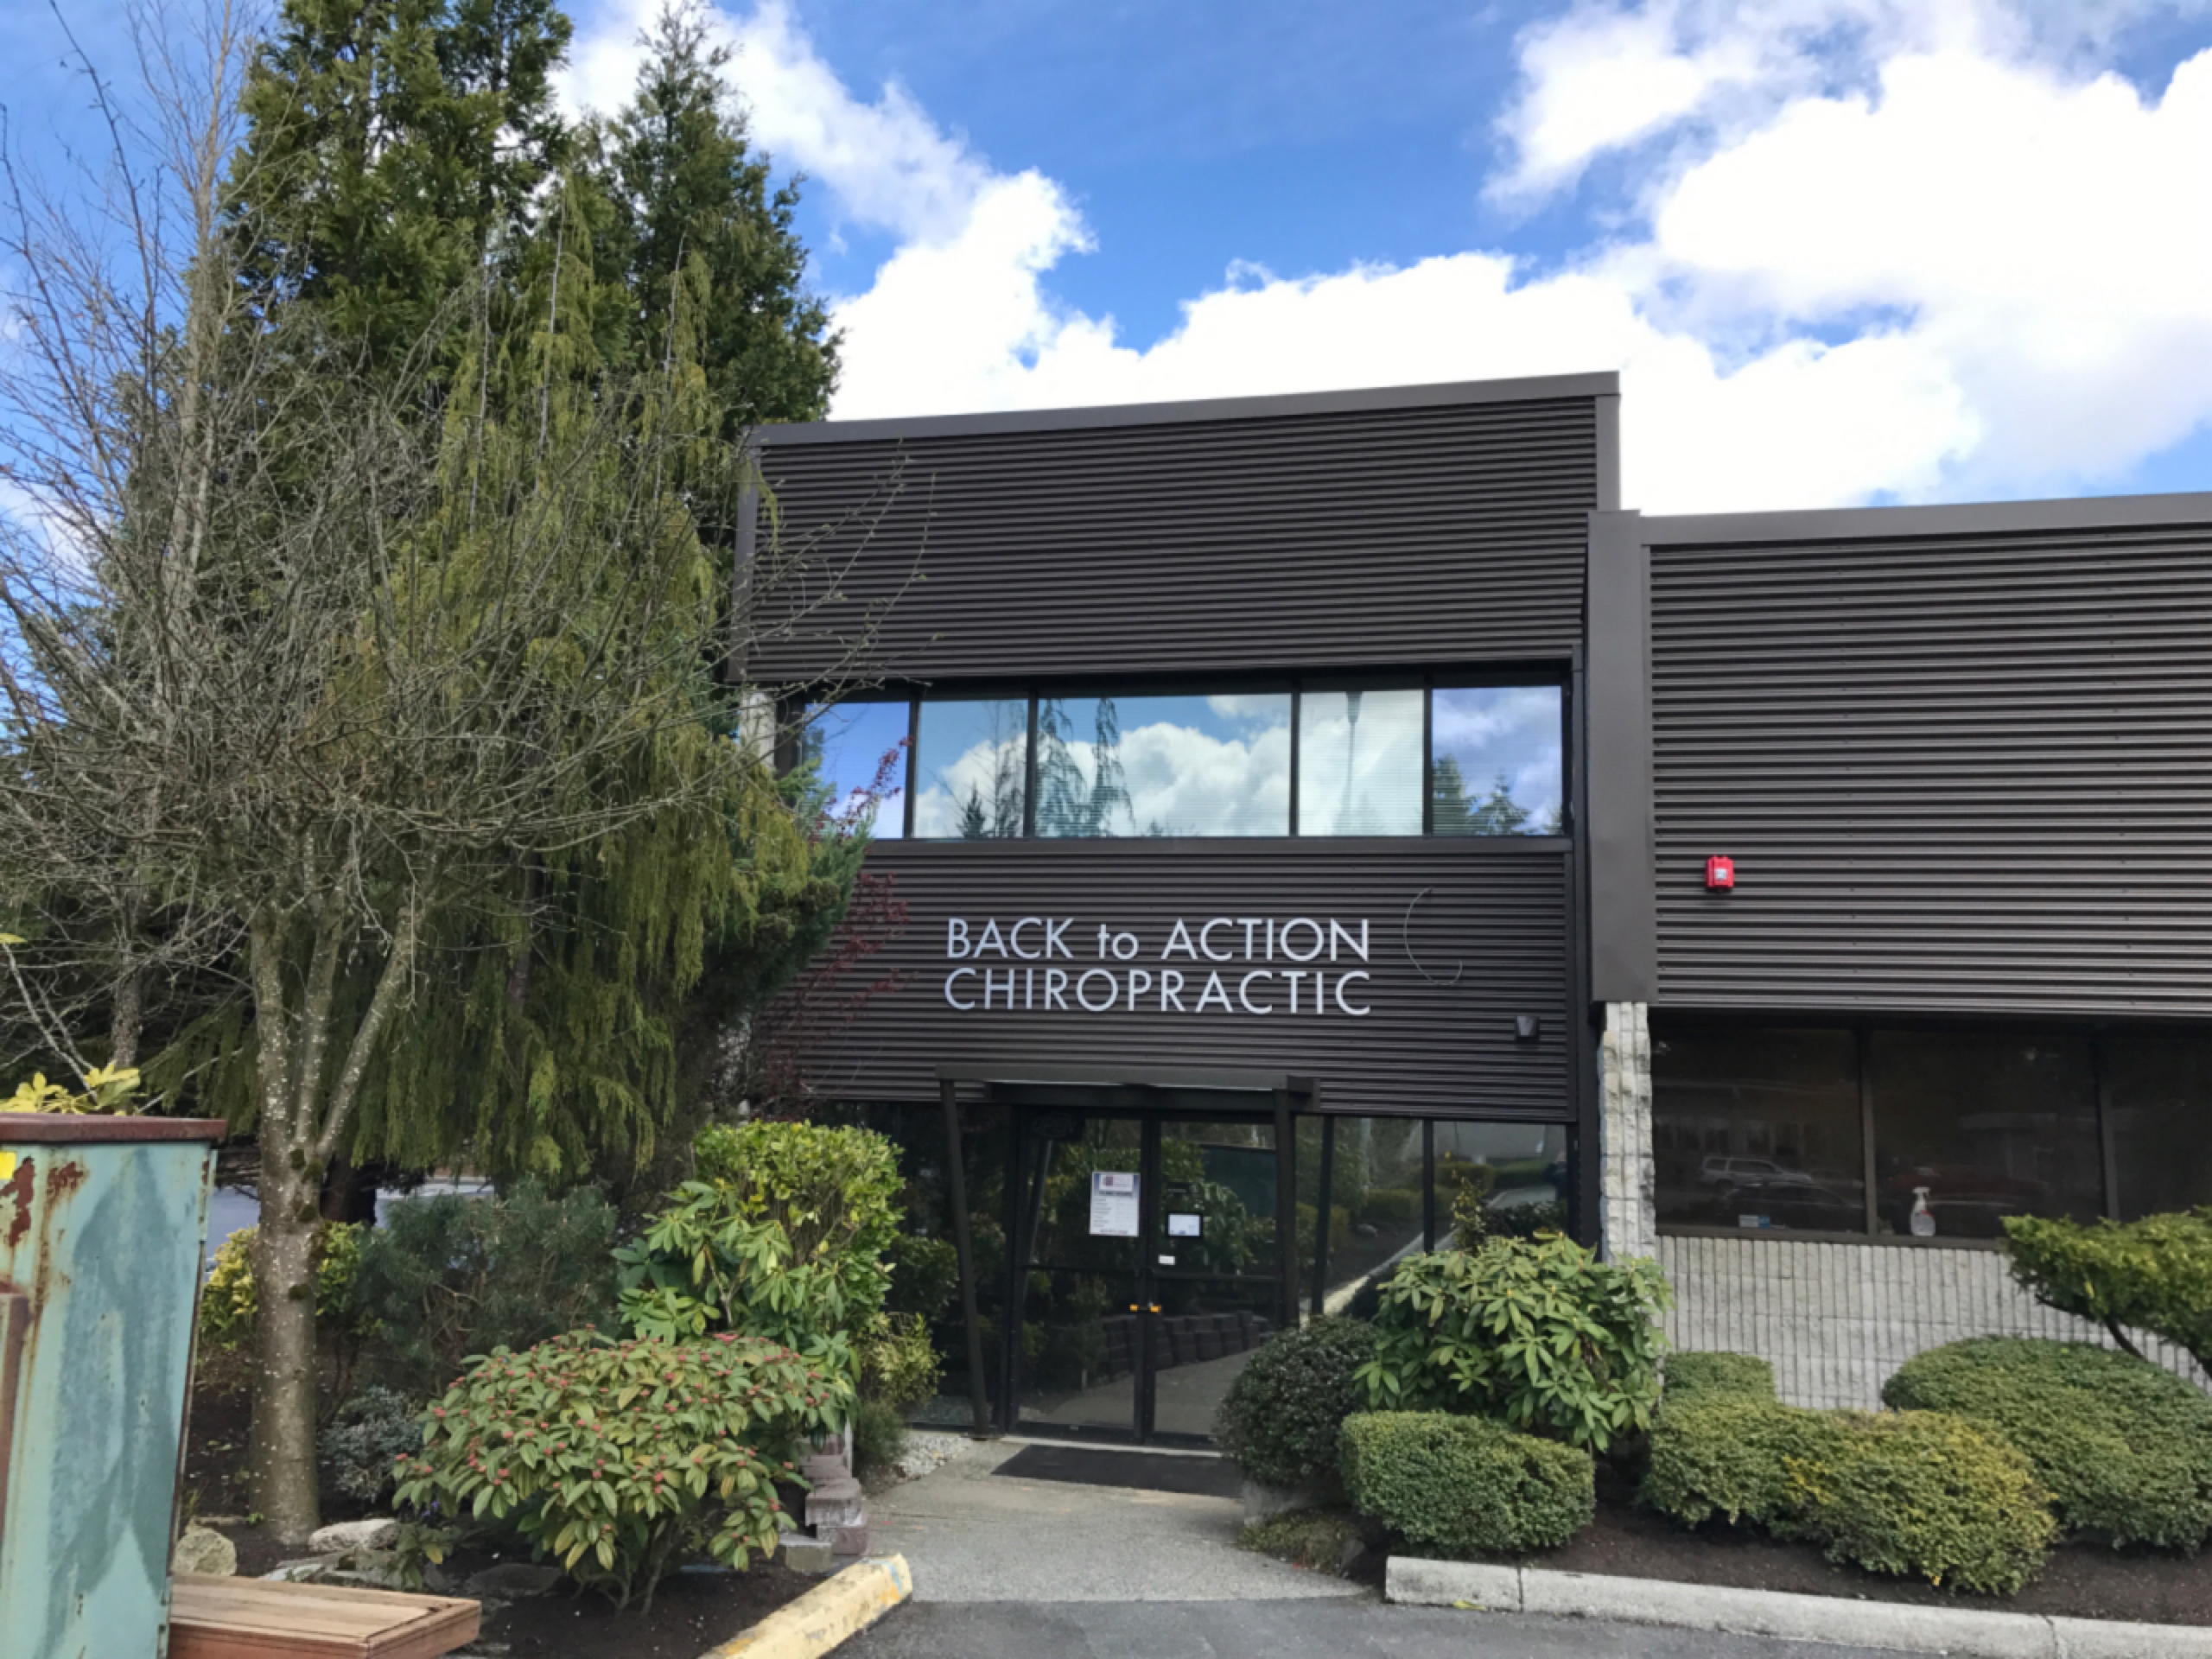 Back To Action Chiropractic and Massage front view